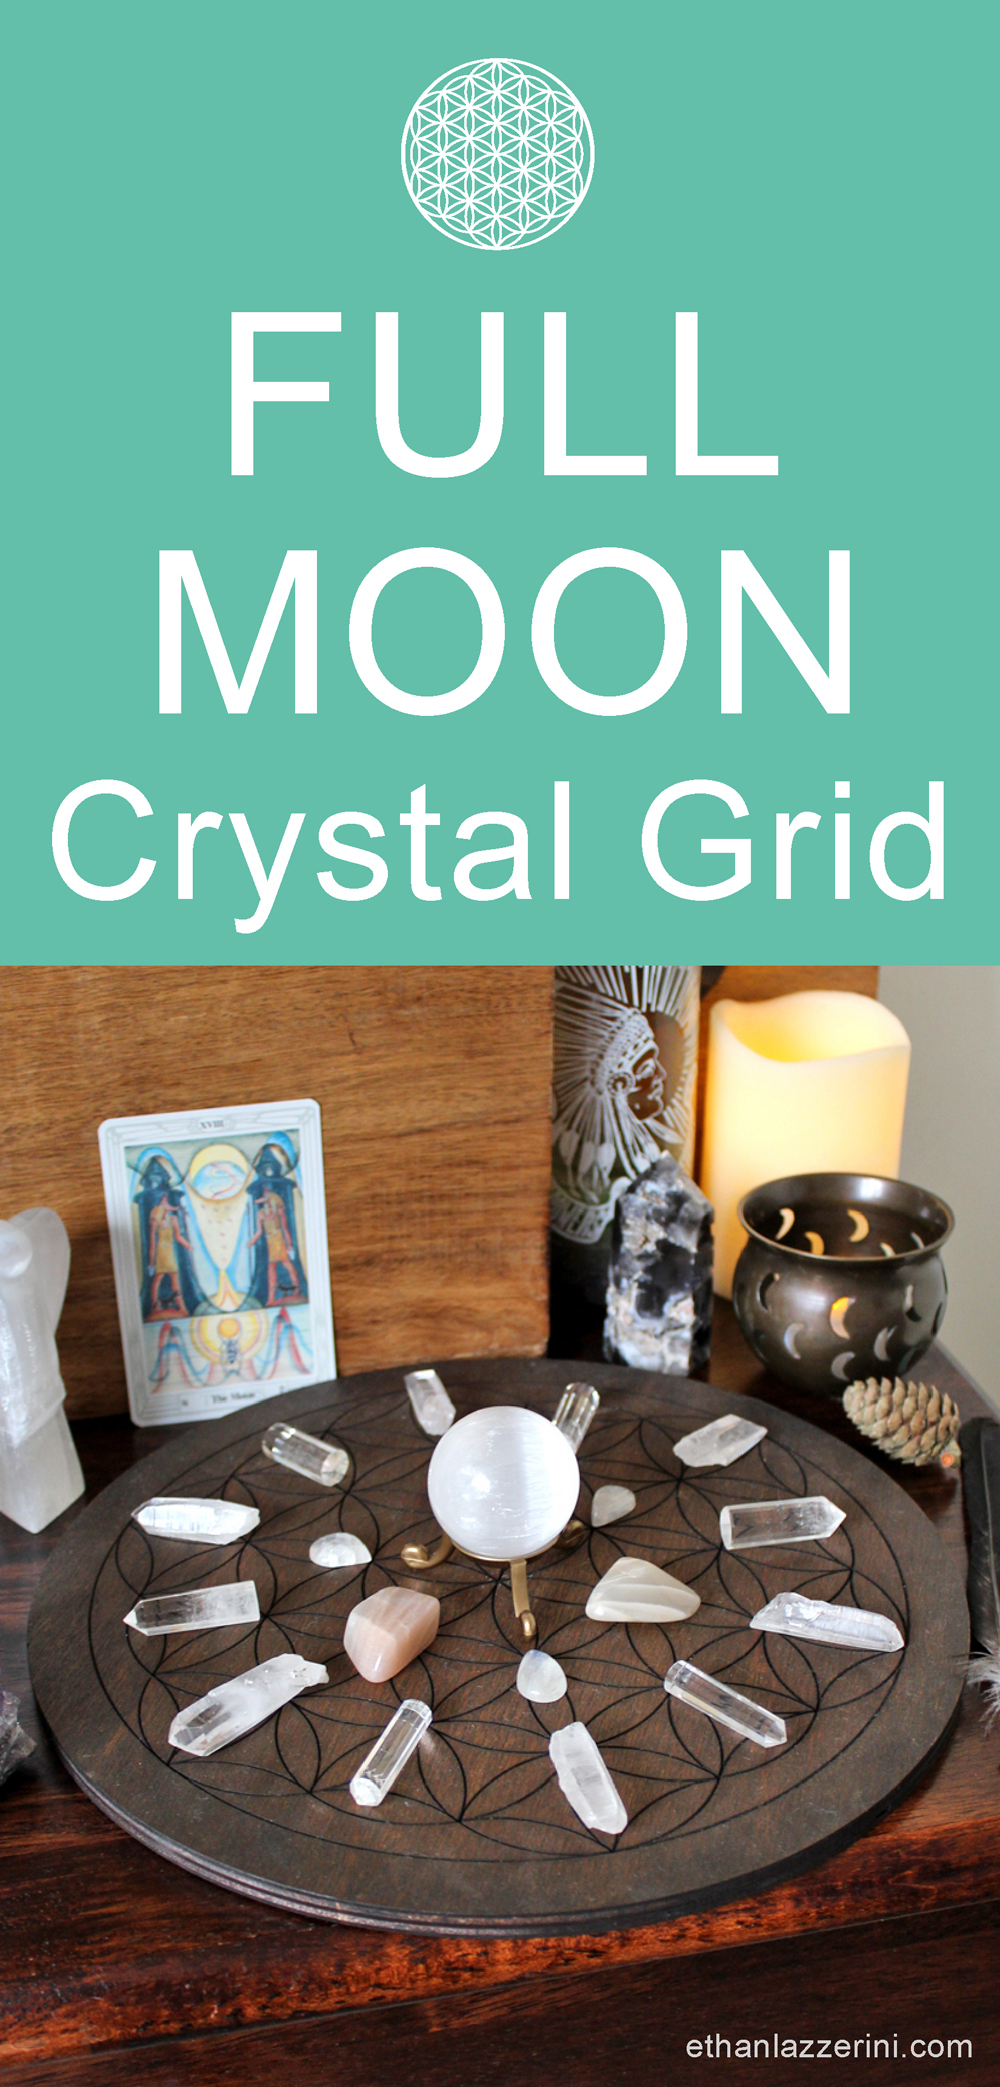 Full Moon Crystal Grid